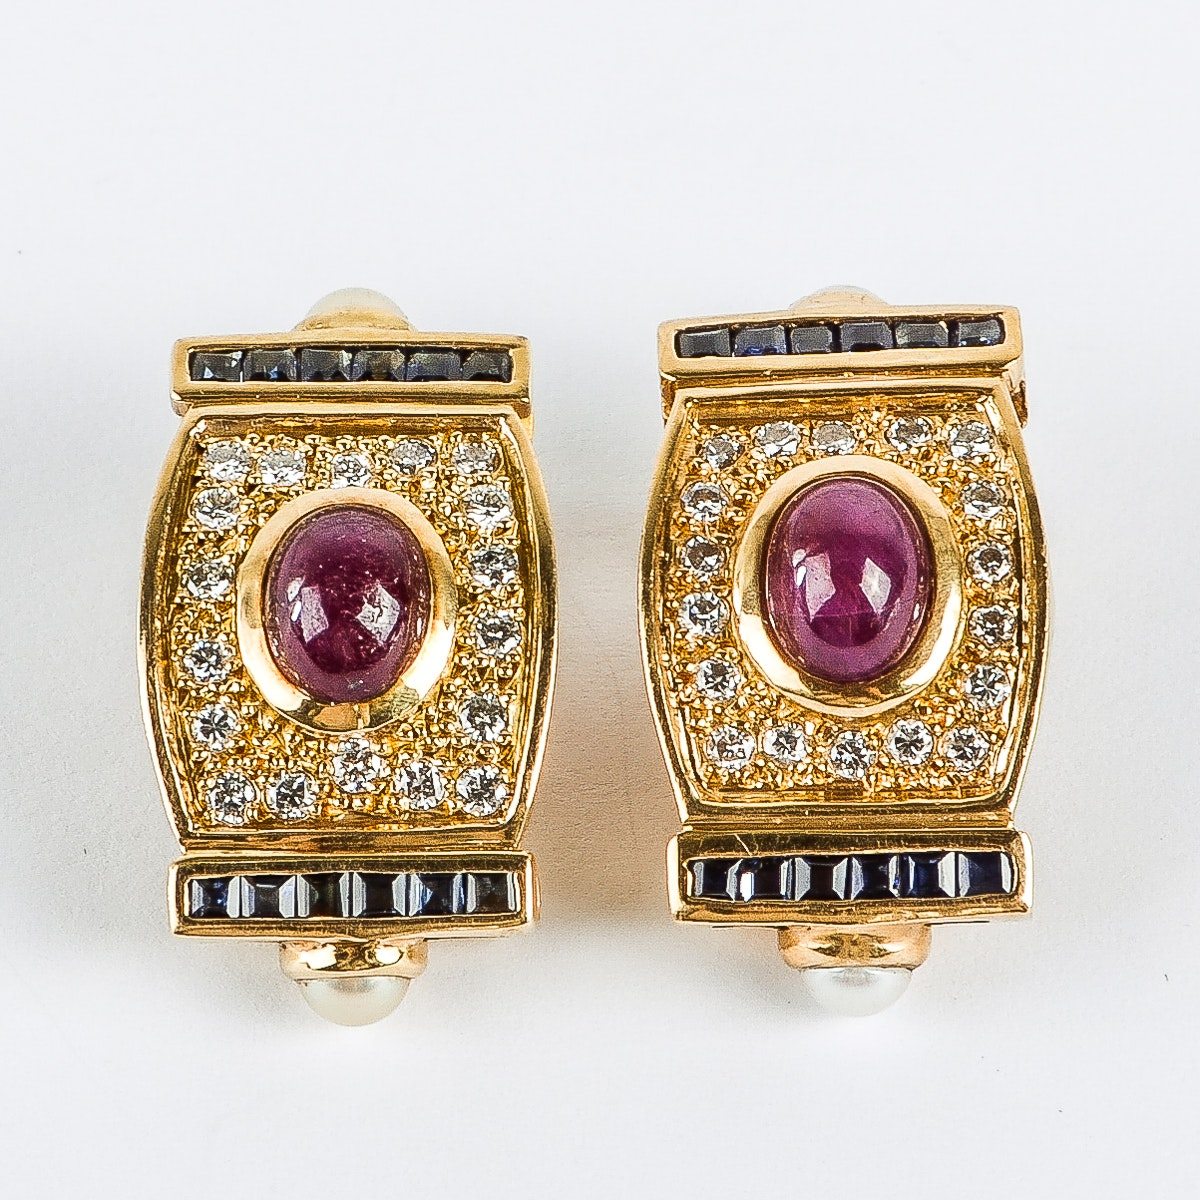 18K Yellow Gold, Ruby, Diamond, Sapphire, and Pearl Clip-On Earrings